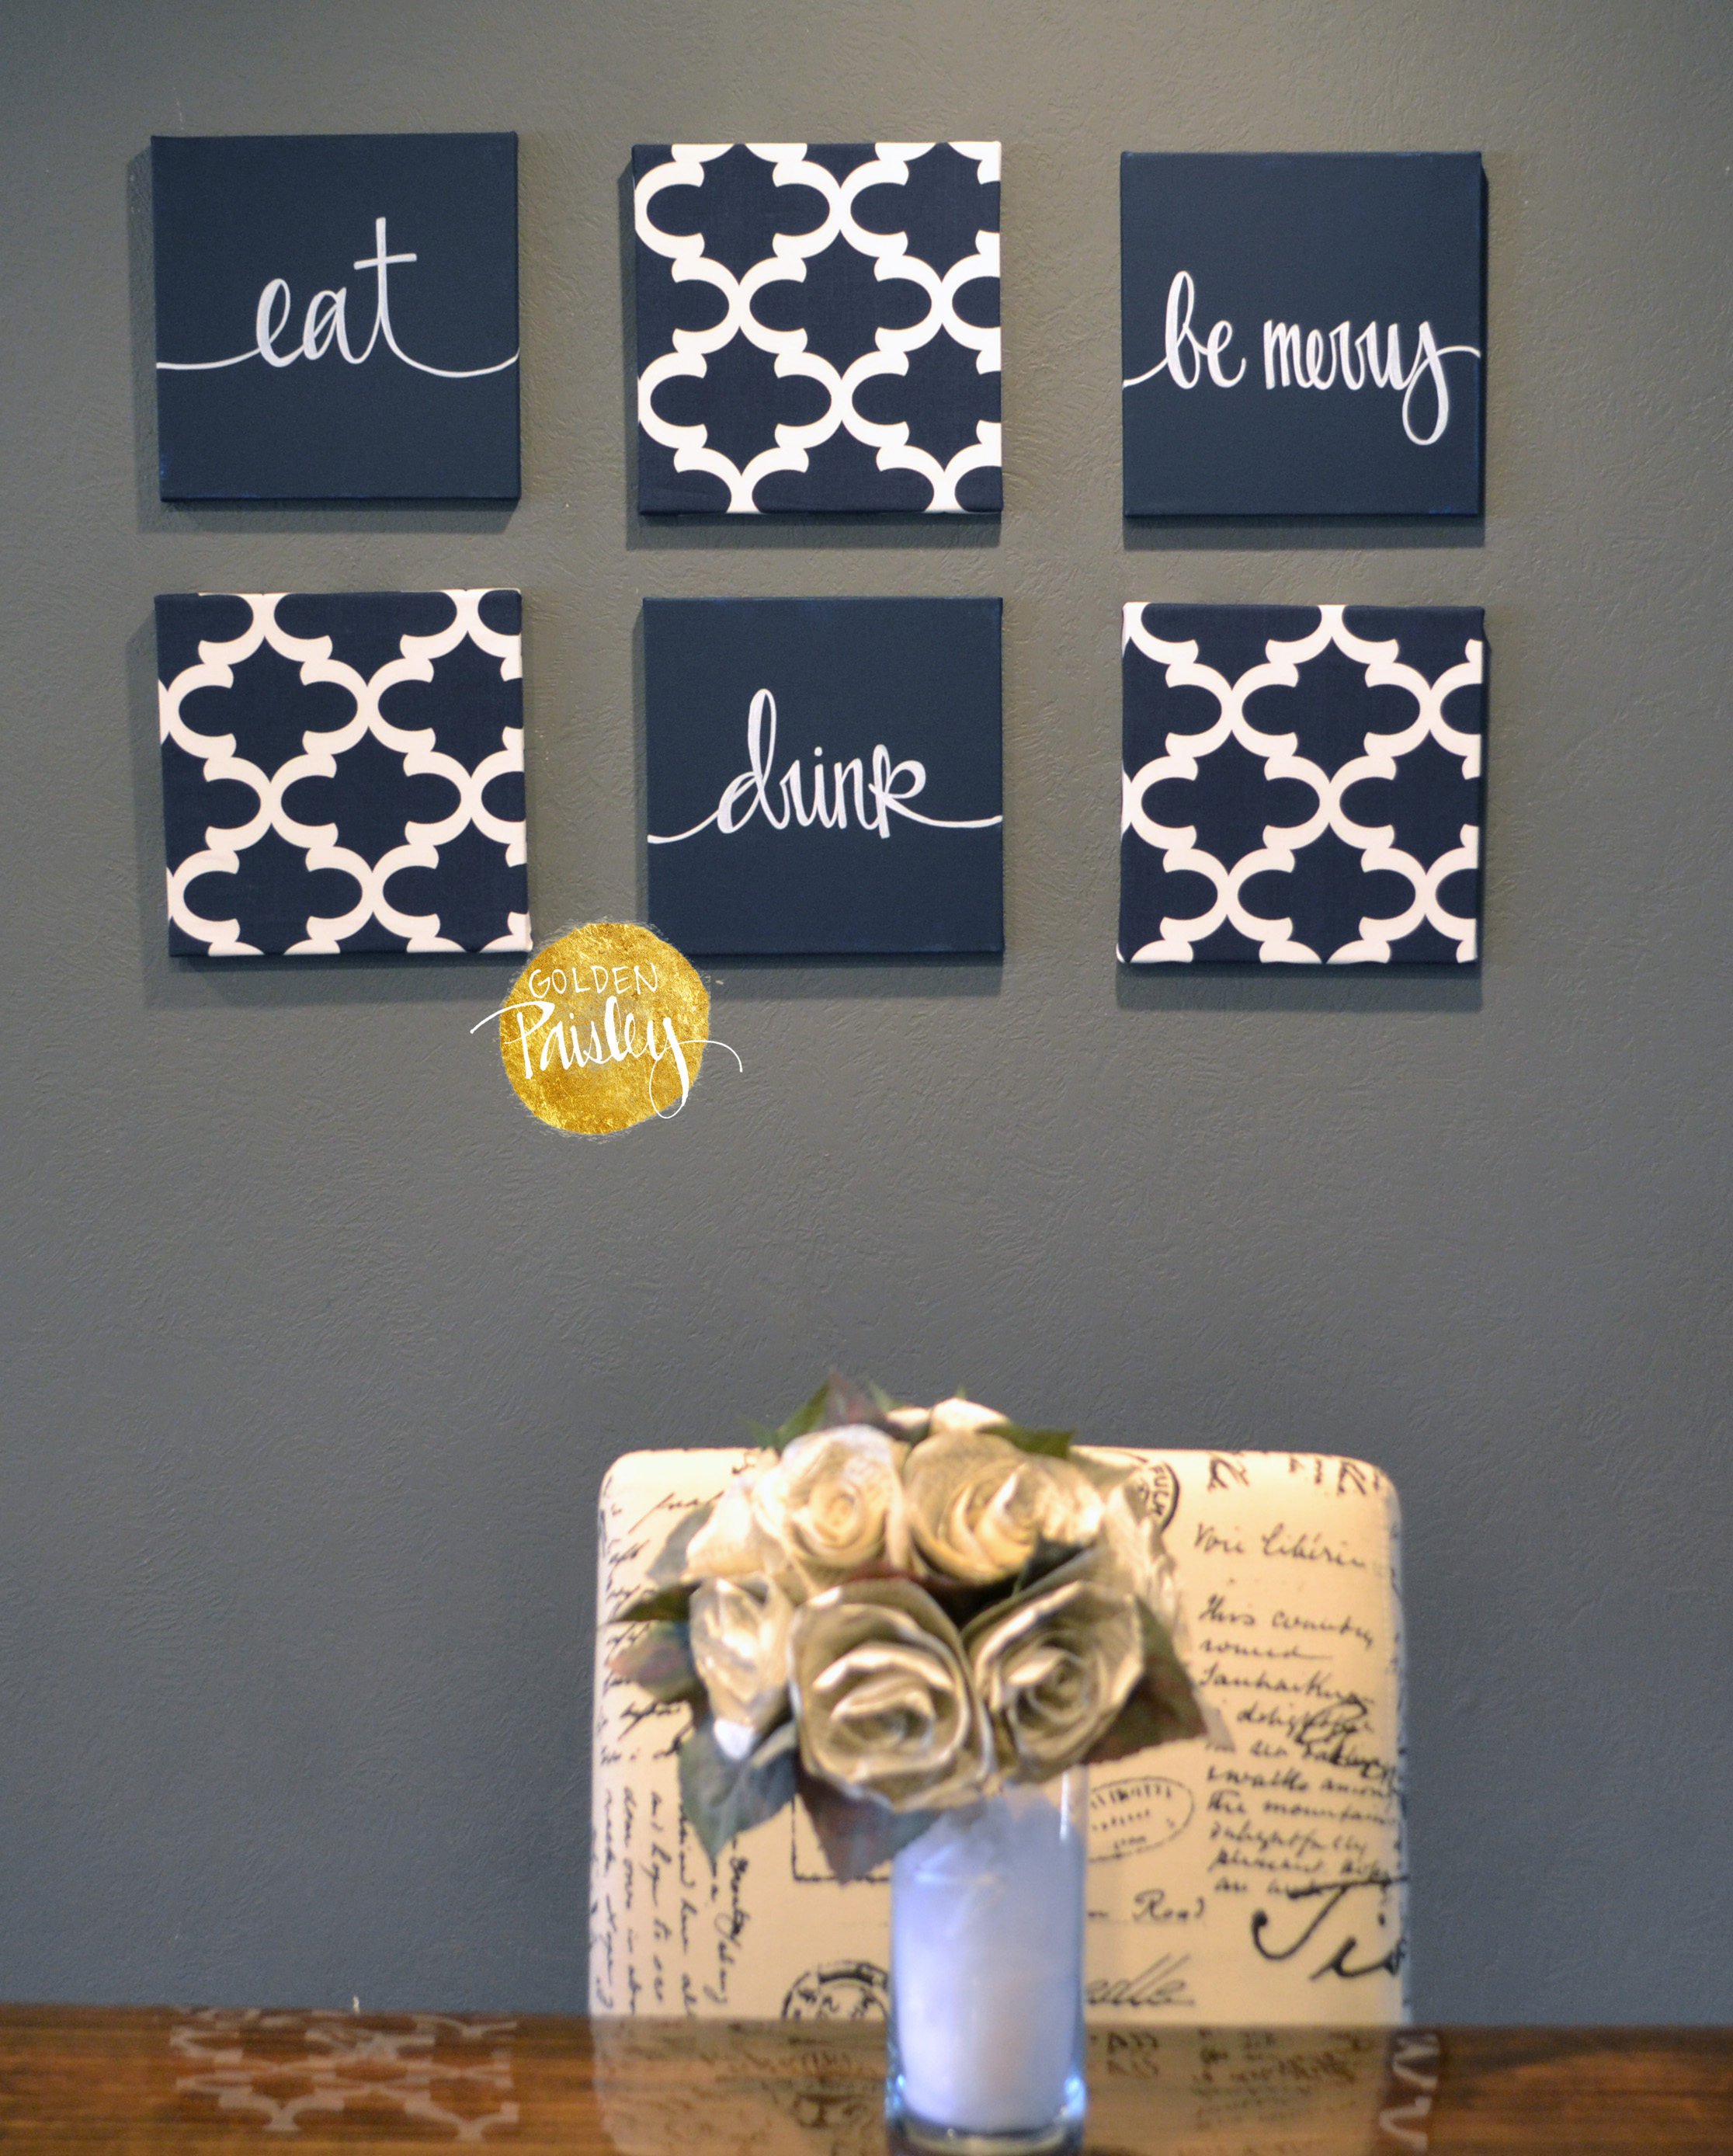 Charmant Eat Drink Be Merry Wall Art Set